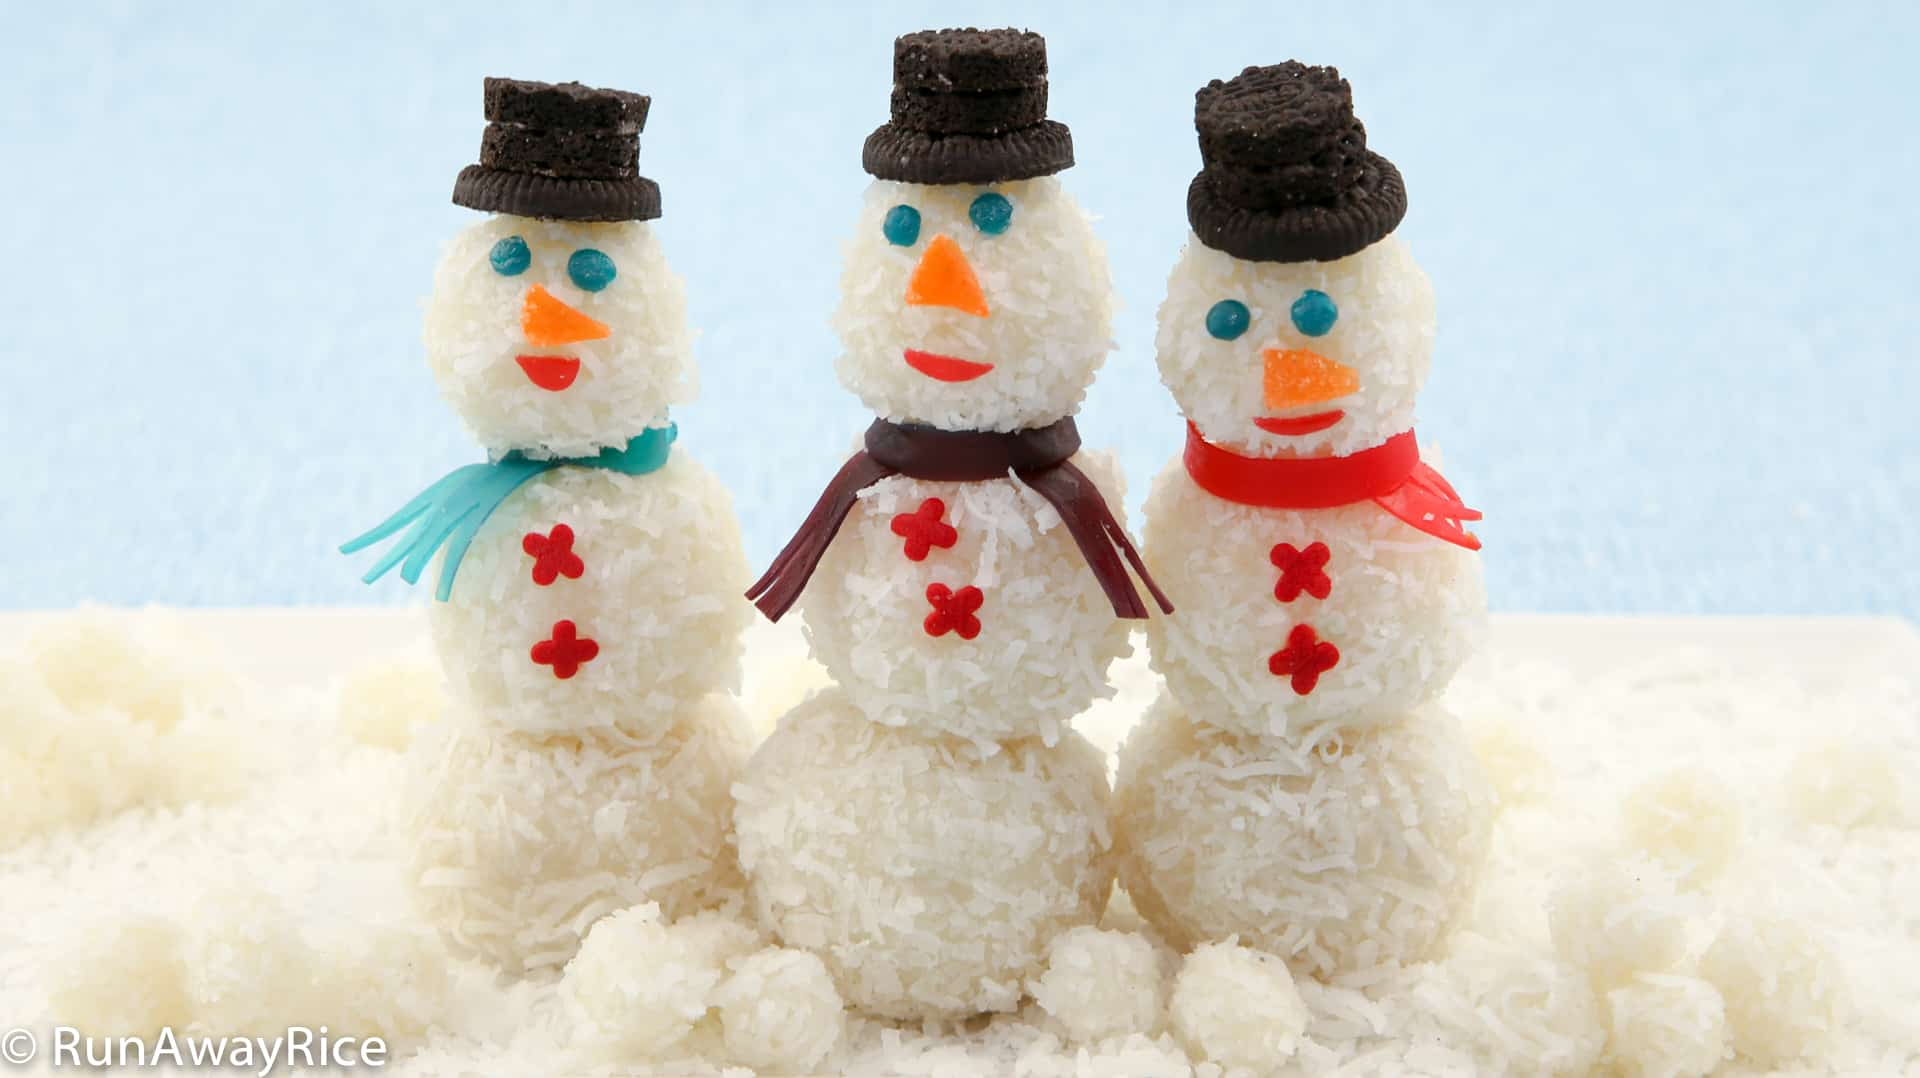 Snowman Snowball Cakes - Yummy Holiday Treats to Make at Home!